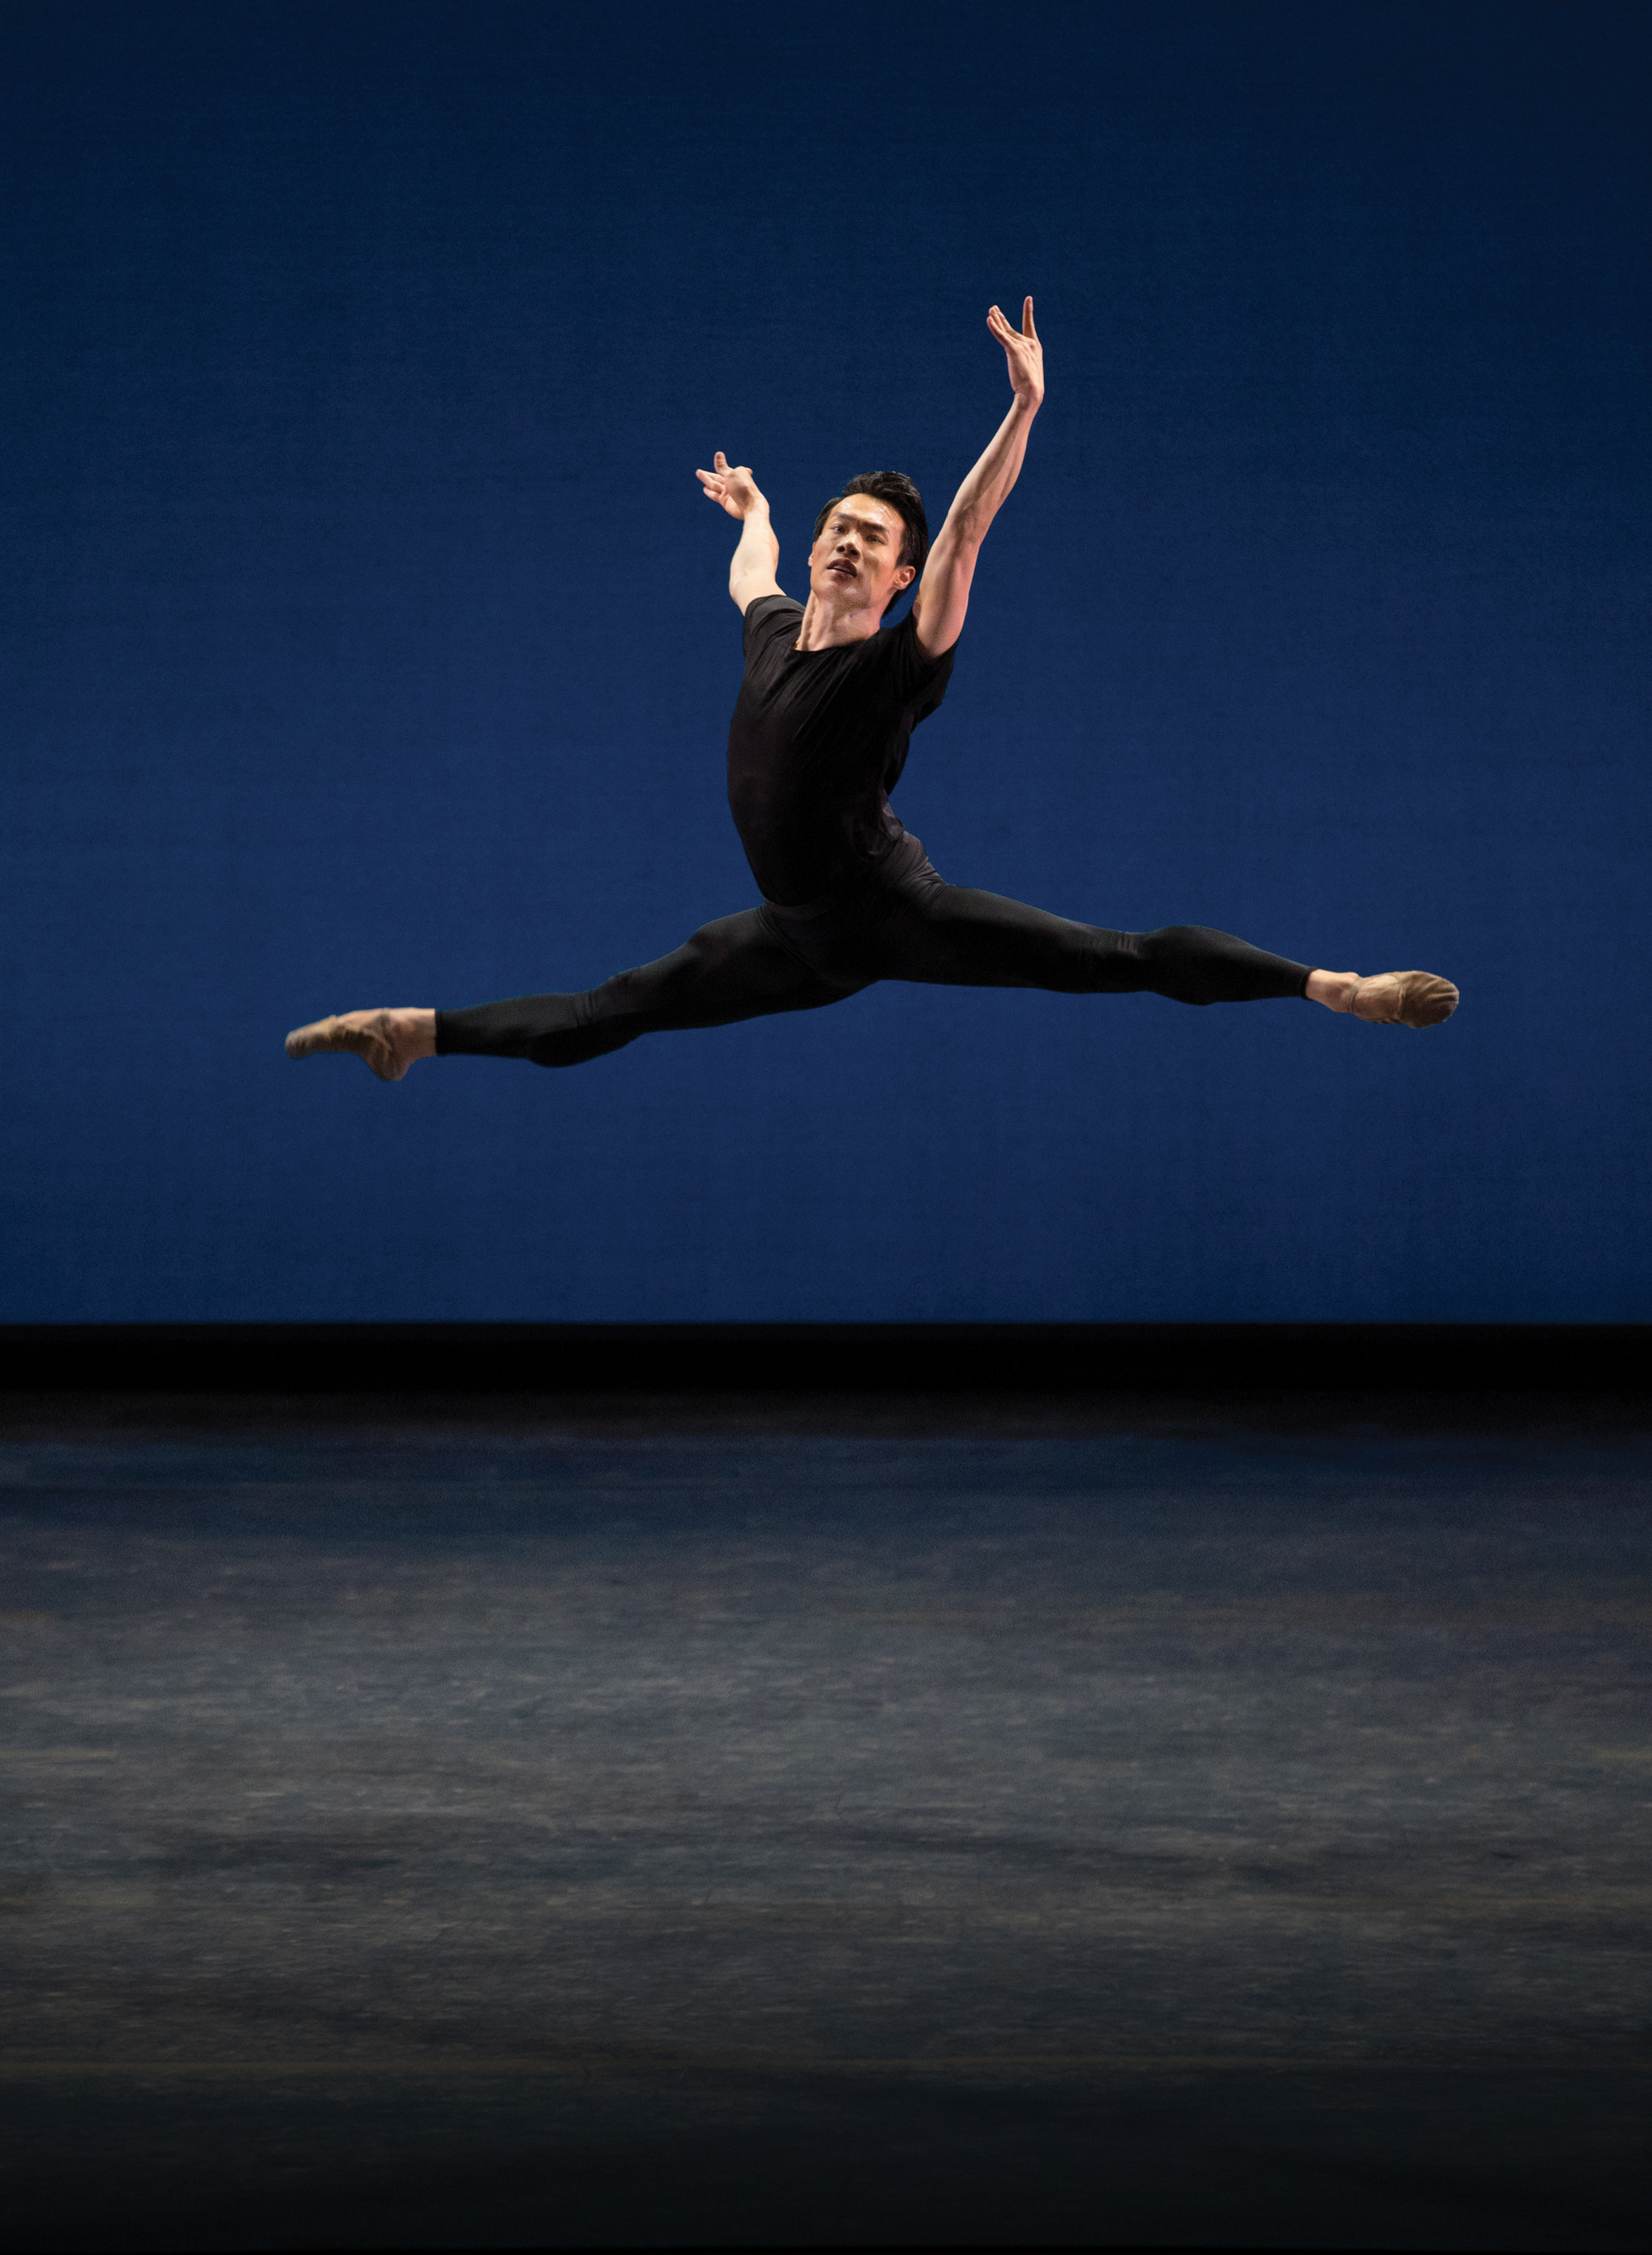 Boston Ballet Principal John Lam Opens Up About Leaving Home to Train, and Being a Dancing Dad